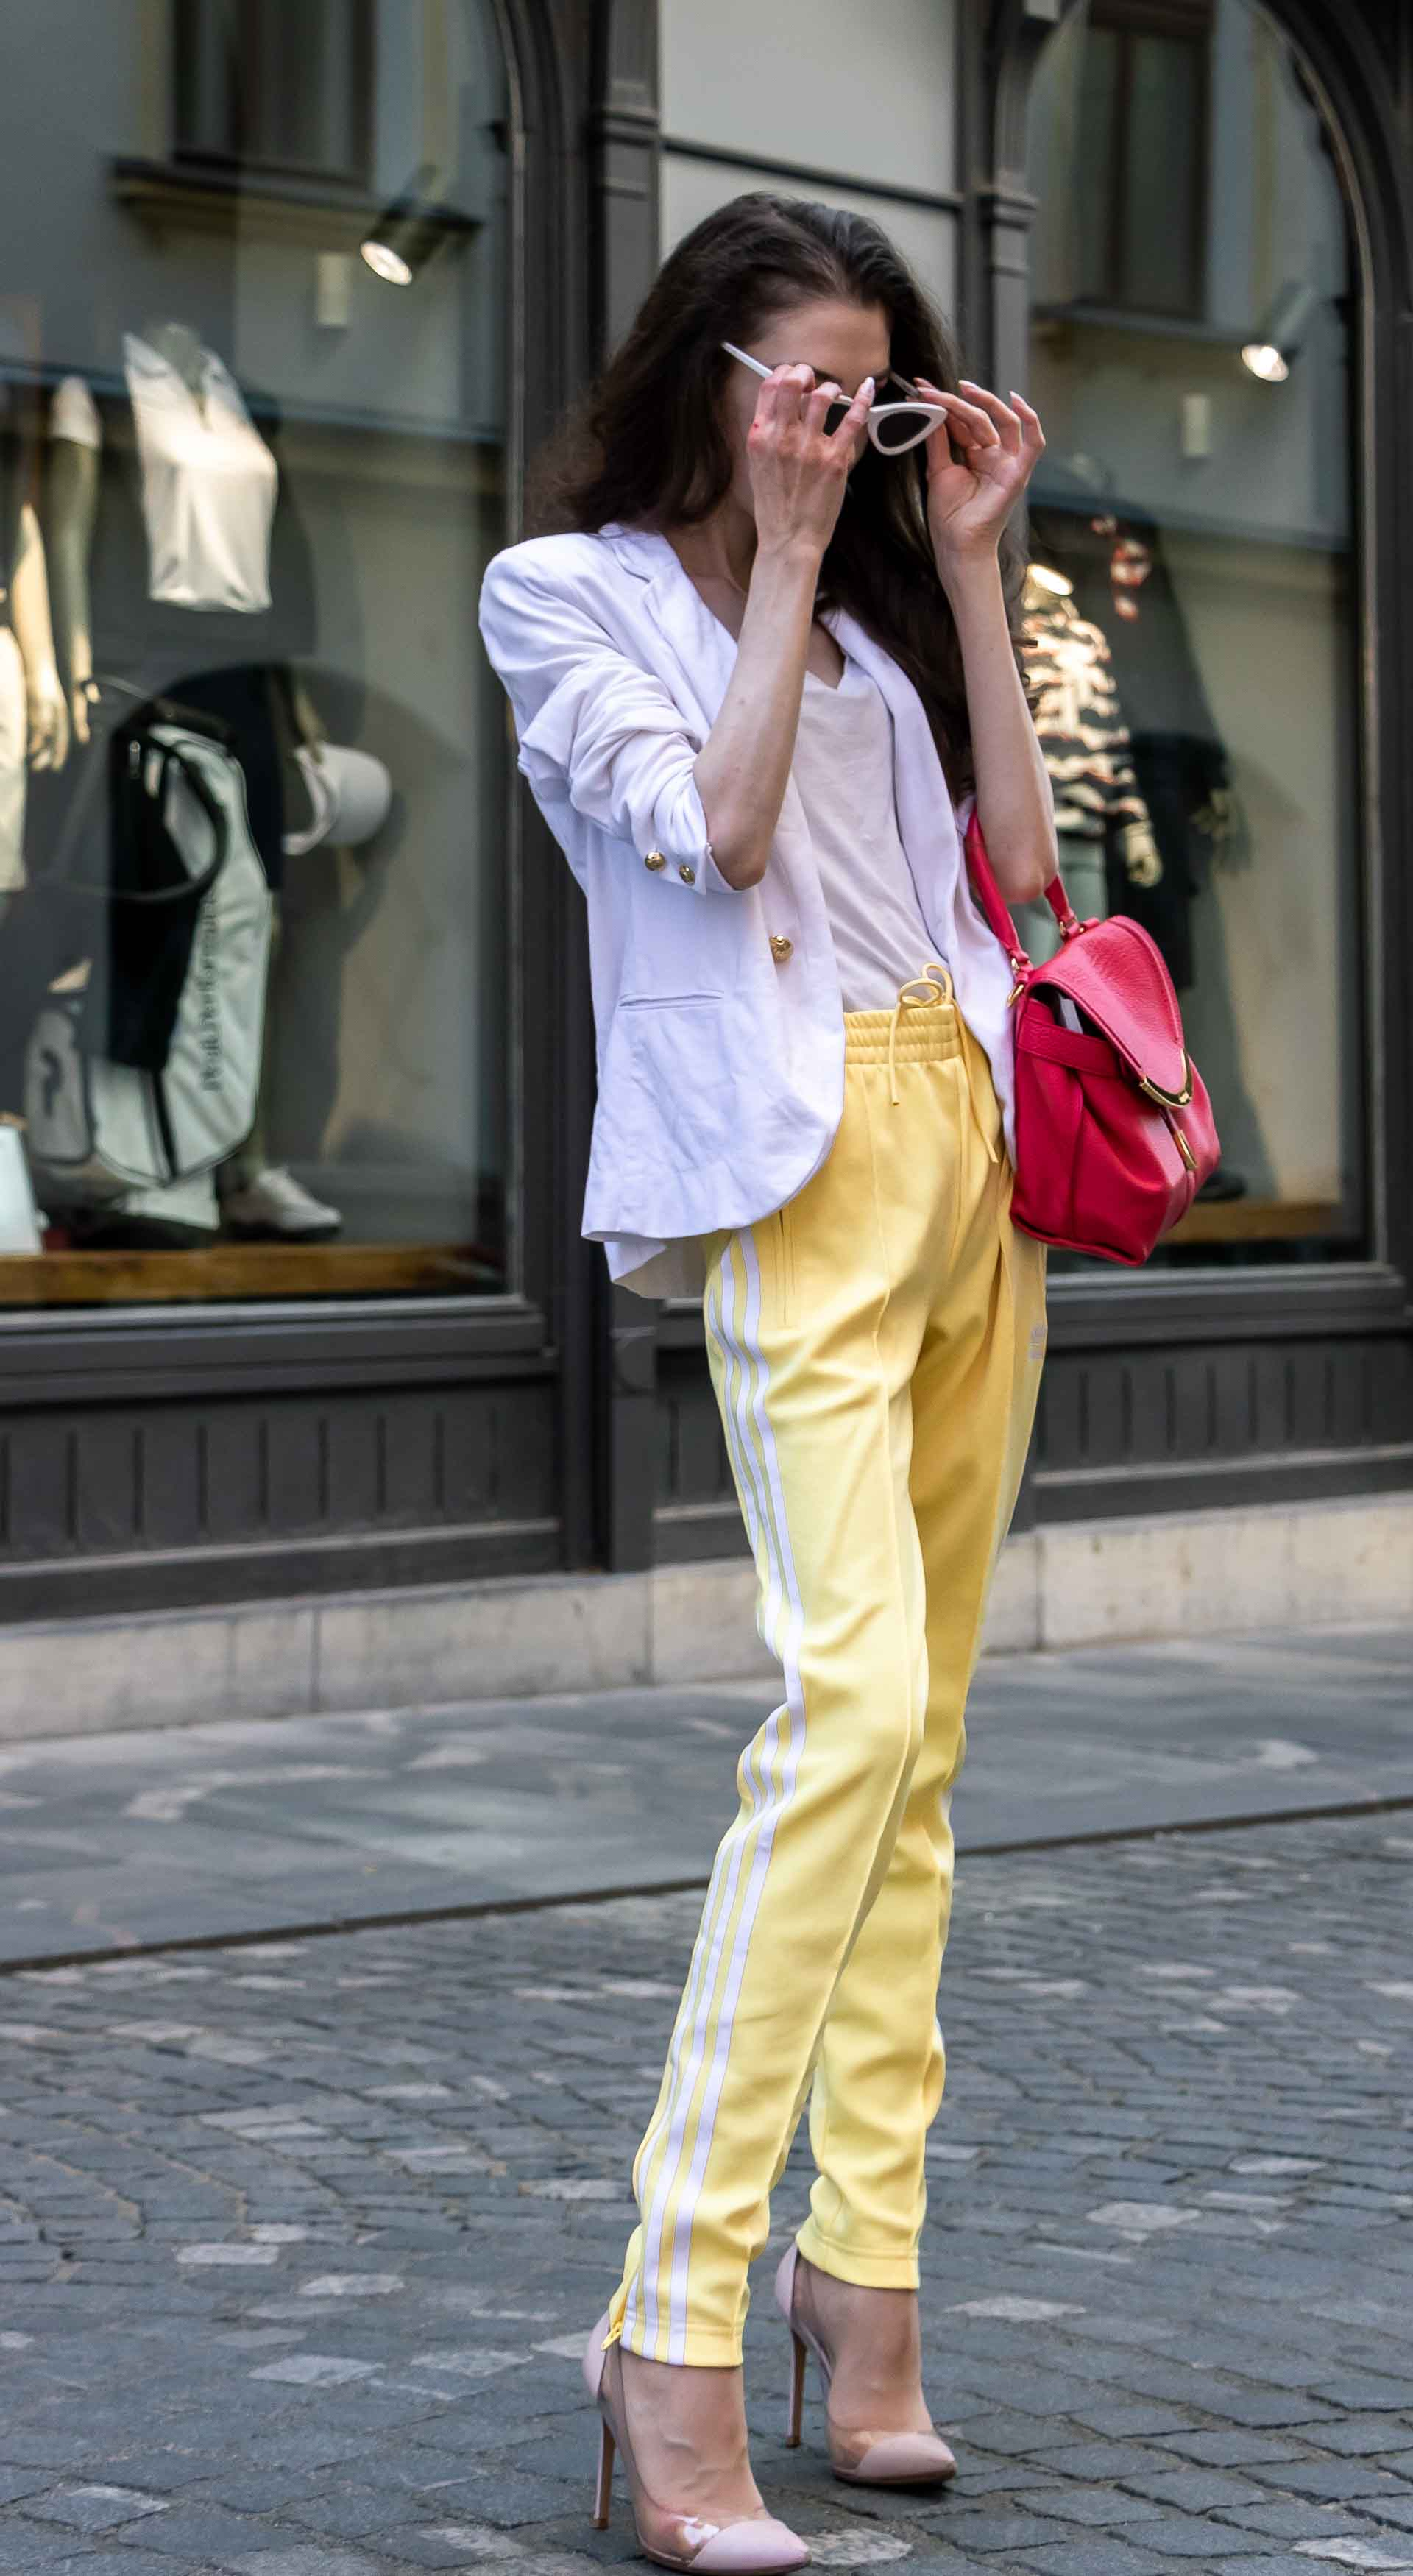 Veronika Lipar Fashion Editor of Brunette from Wall Street dressed in white blazer, white H&M t-shirt, yellow Addidas track pants, See by Chloé pink top handle bag, Adam Selman x Le Specs white cat eye Lolita sunglasses, pink blush Gianvito Rossi plexi pumps in summer